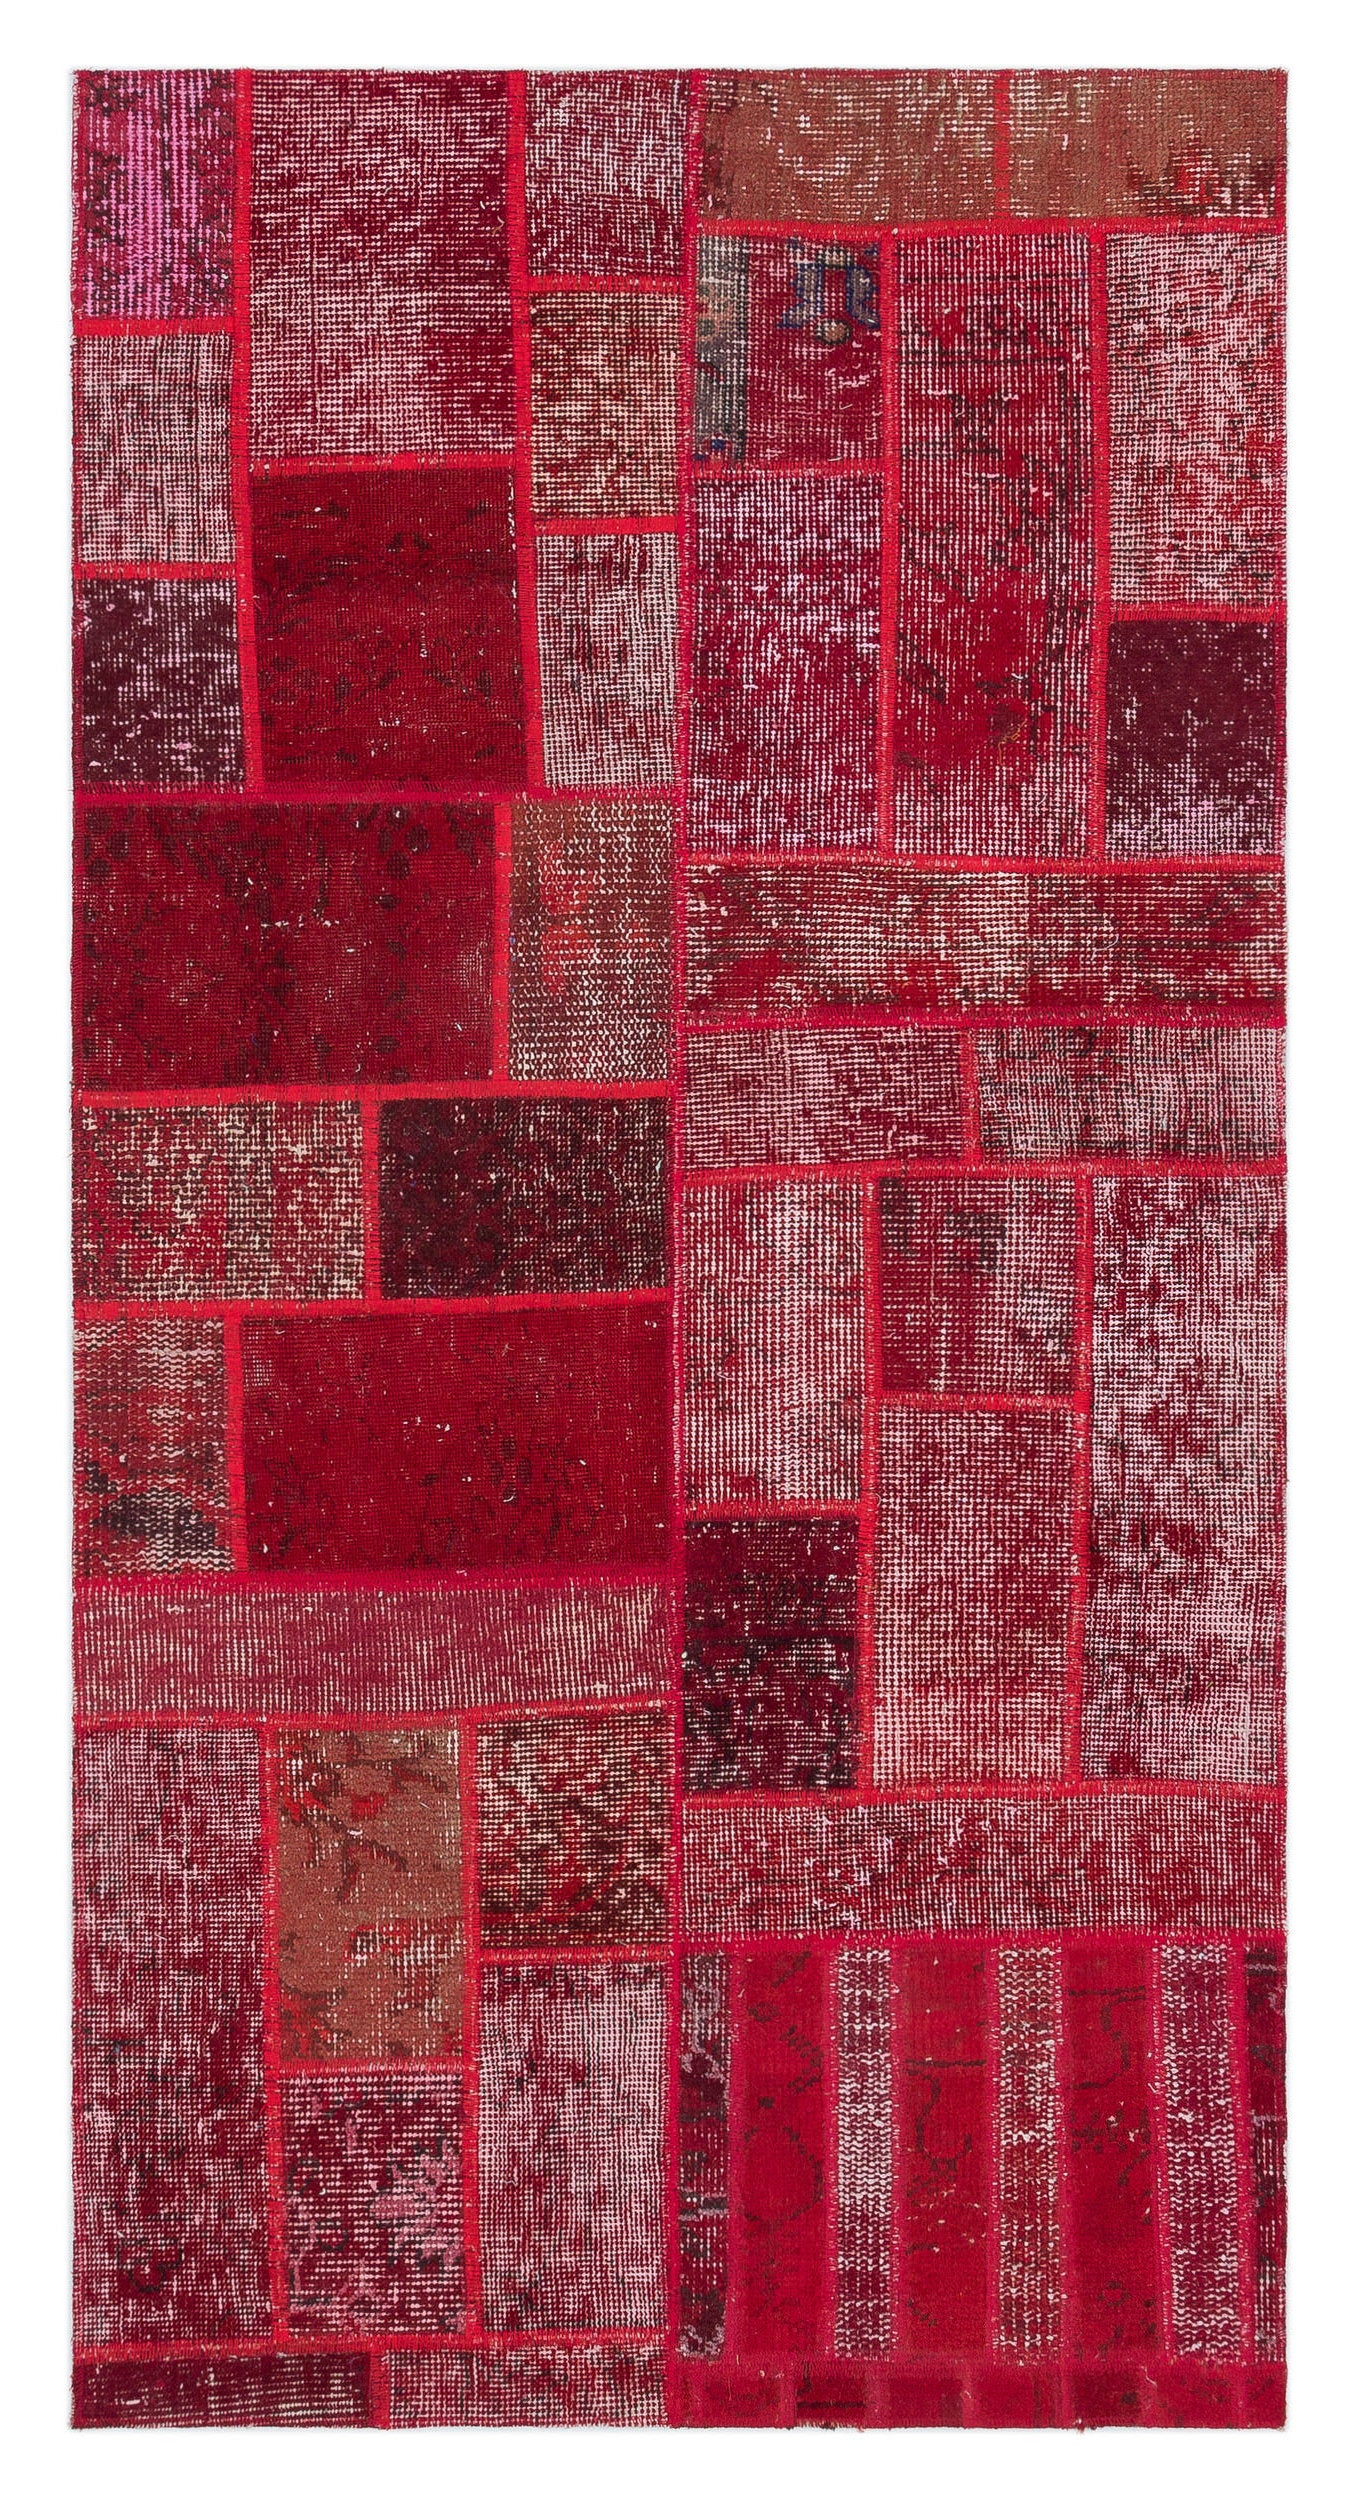 Red Over Dyed Patchwork Unique Rug 2'7'' x 5'0'' ft 79 x 153 cm